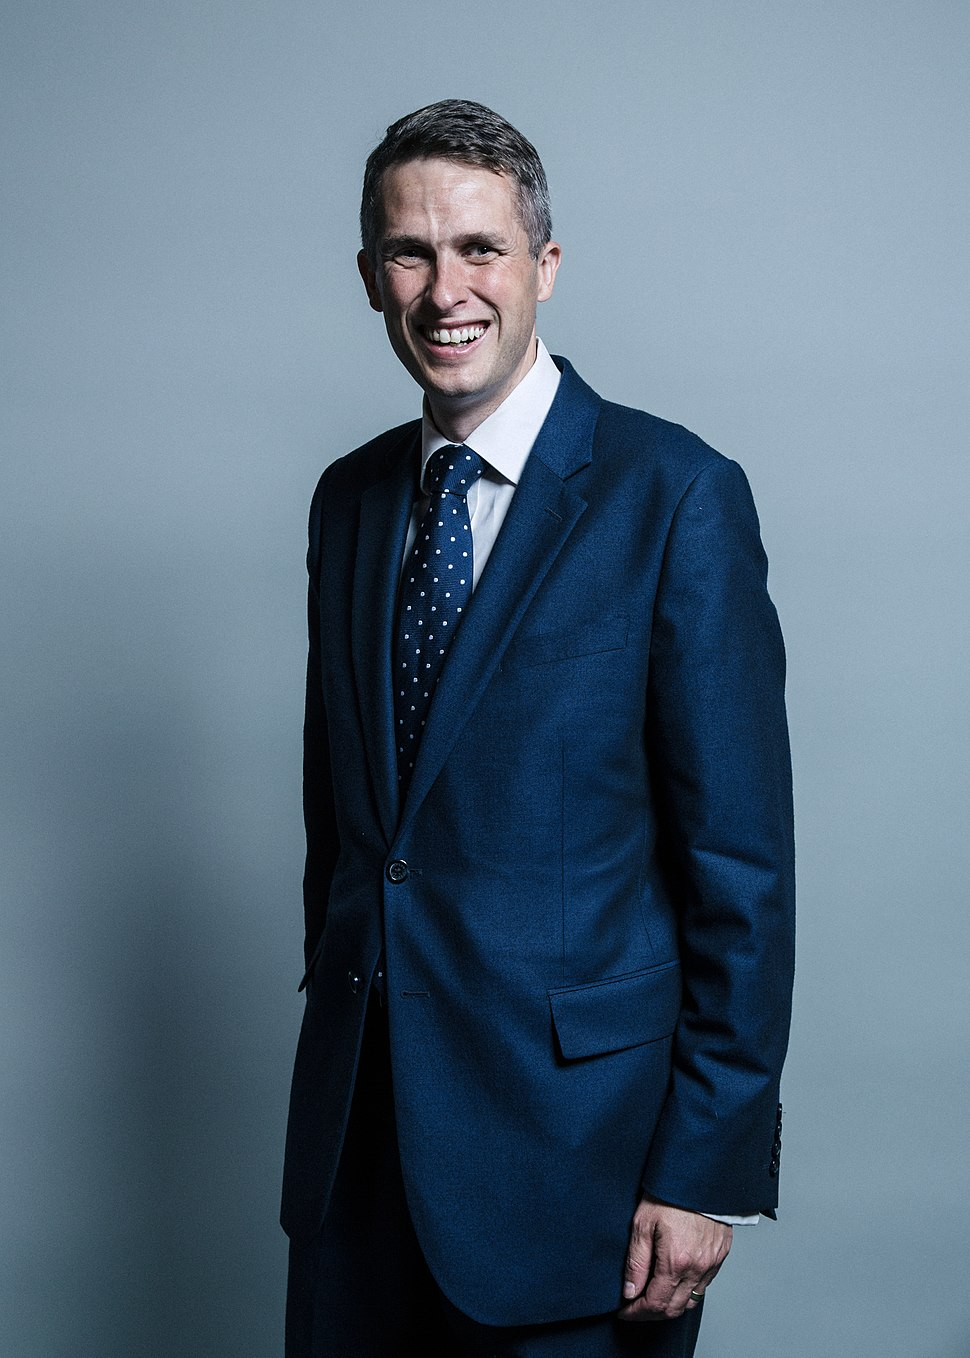 Official portrait of Gavin Williamson